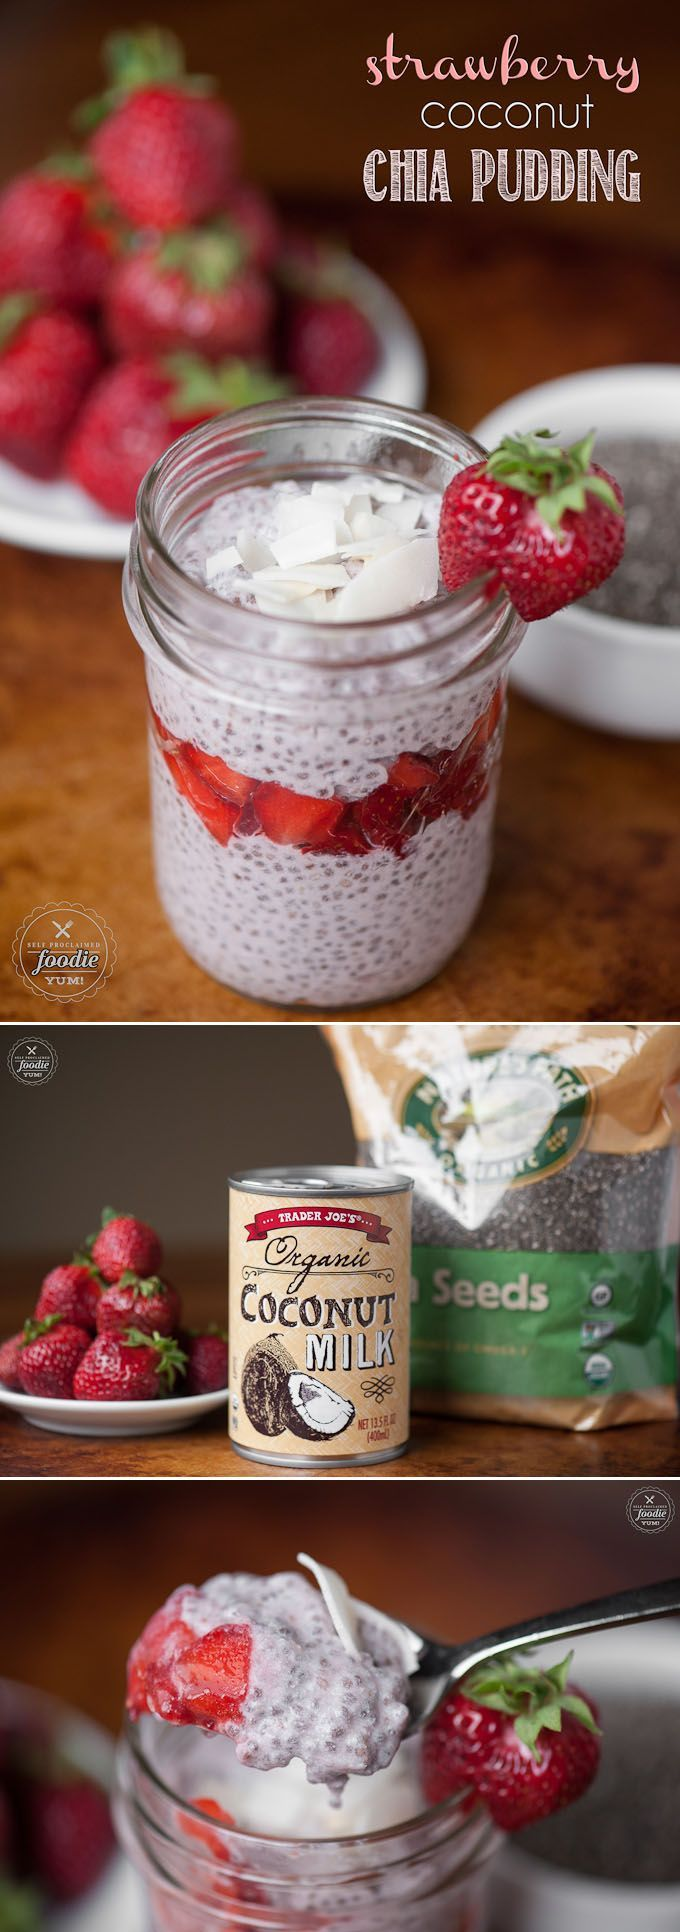 Strawberry Coconut Chia Pudding is an easy, tasty, healthy, paleo, nutrient packed snack that not only tastes great and fills you up, but its good for you!